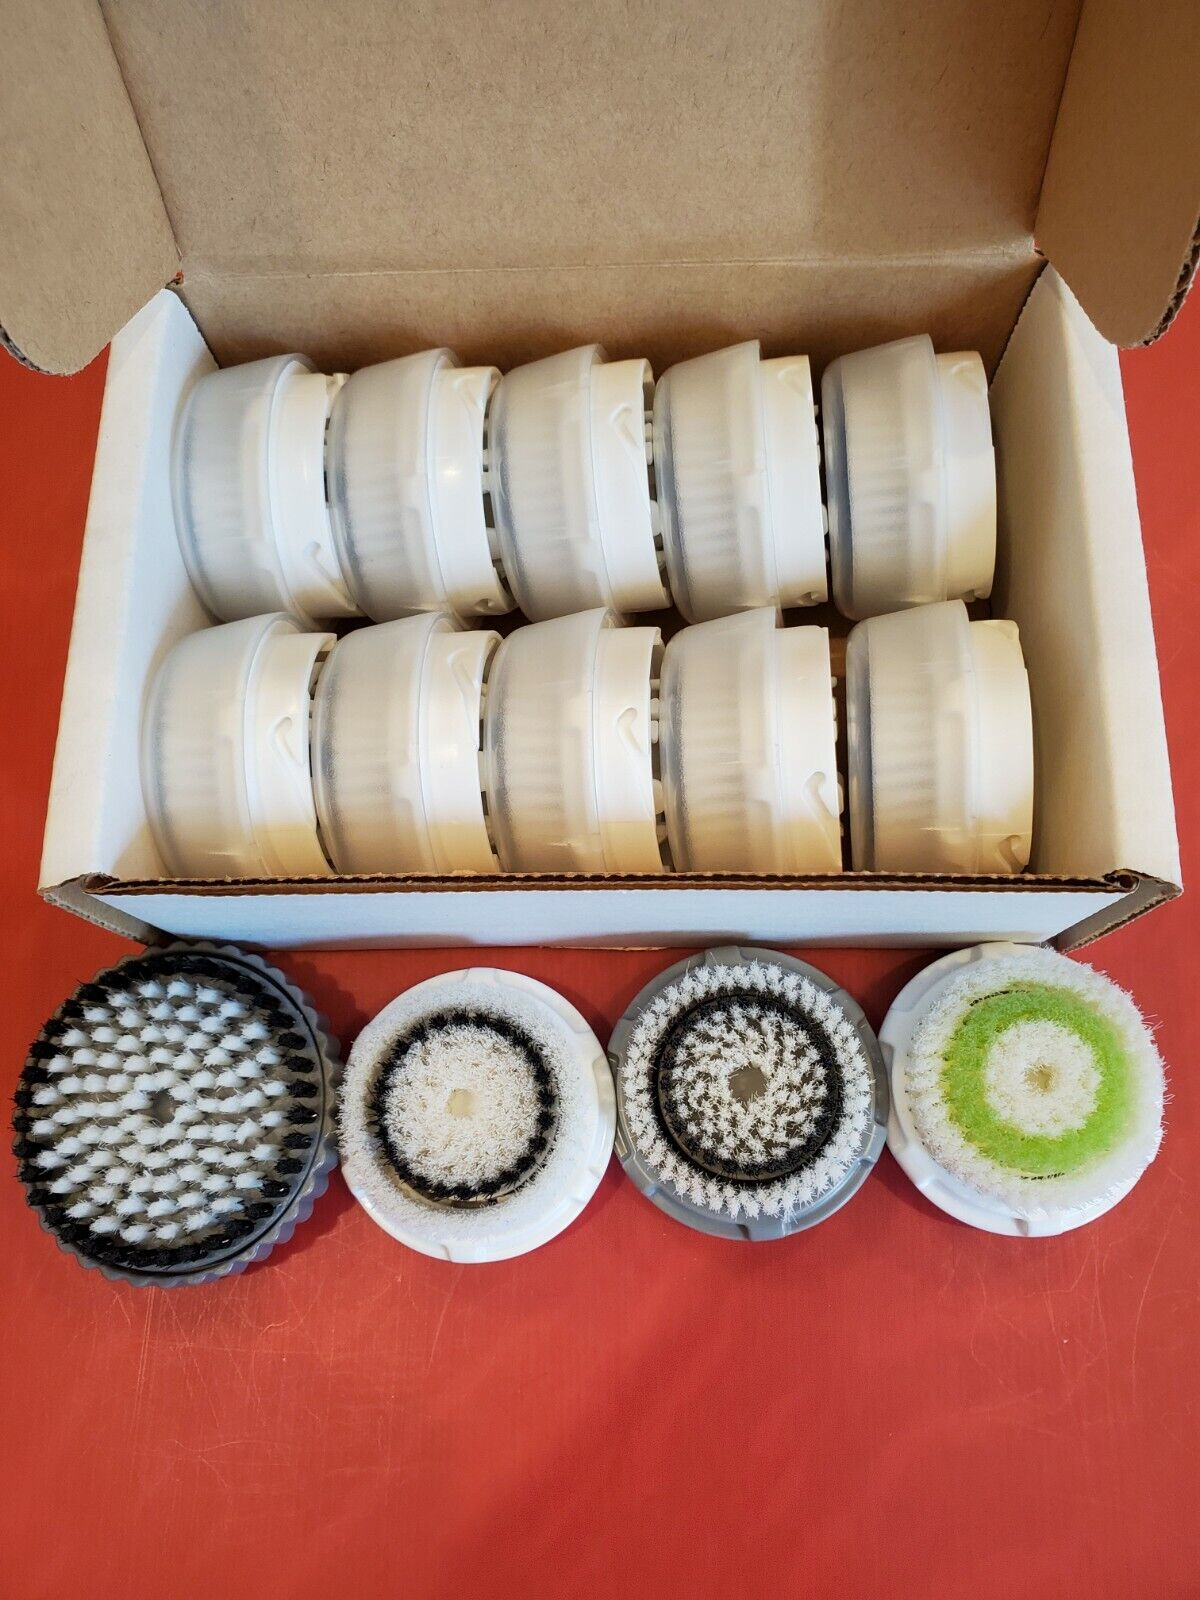 AUTHENTIC! CLARISONIC BRUSH HEADS - 10PK - 4 TYPES TO CHOOSE   $49.99-59.99